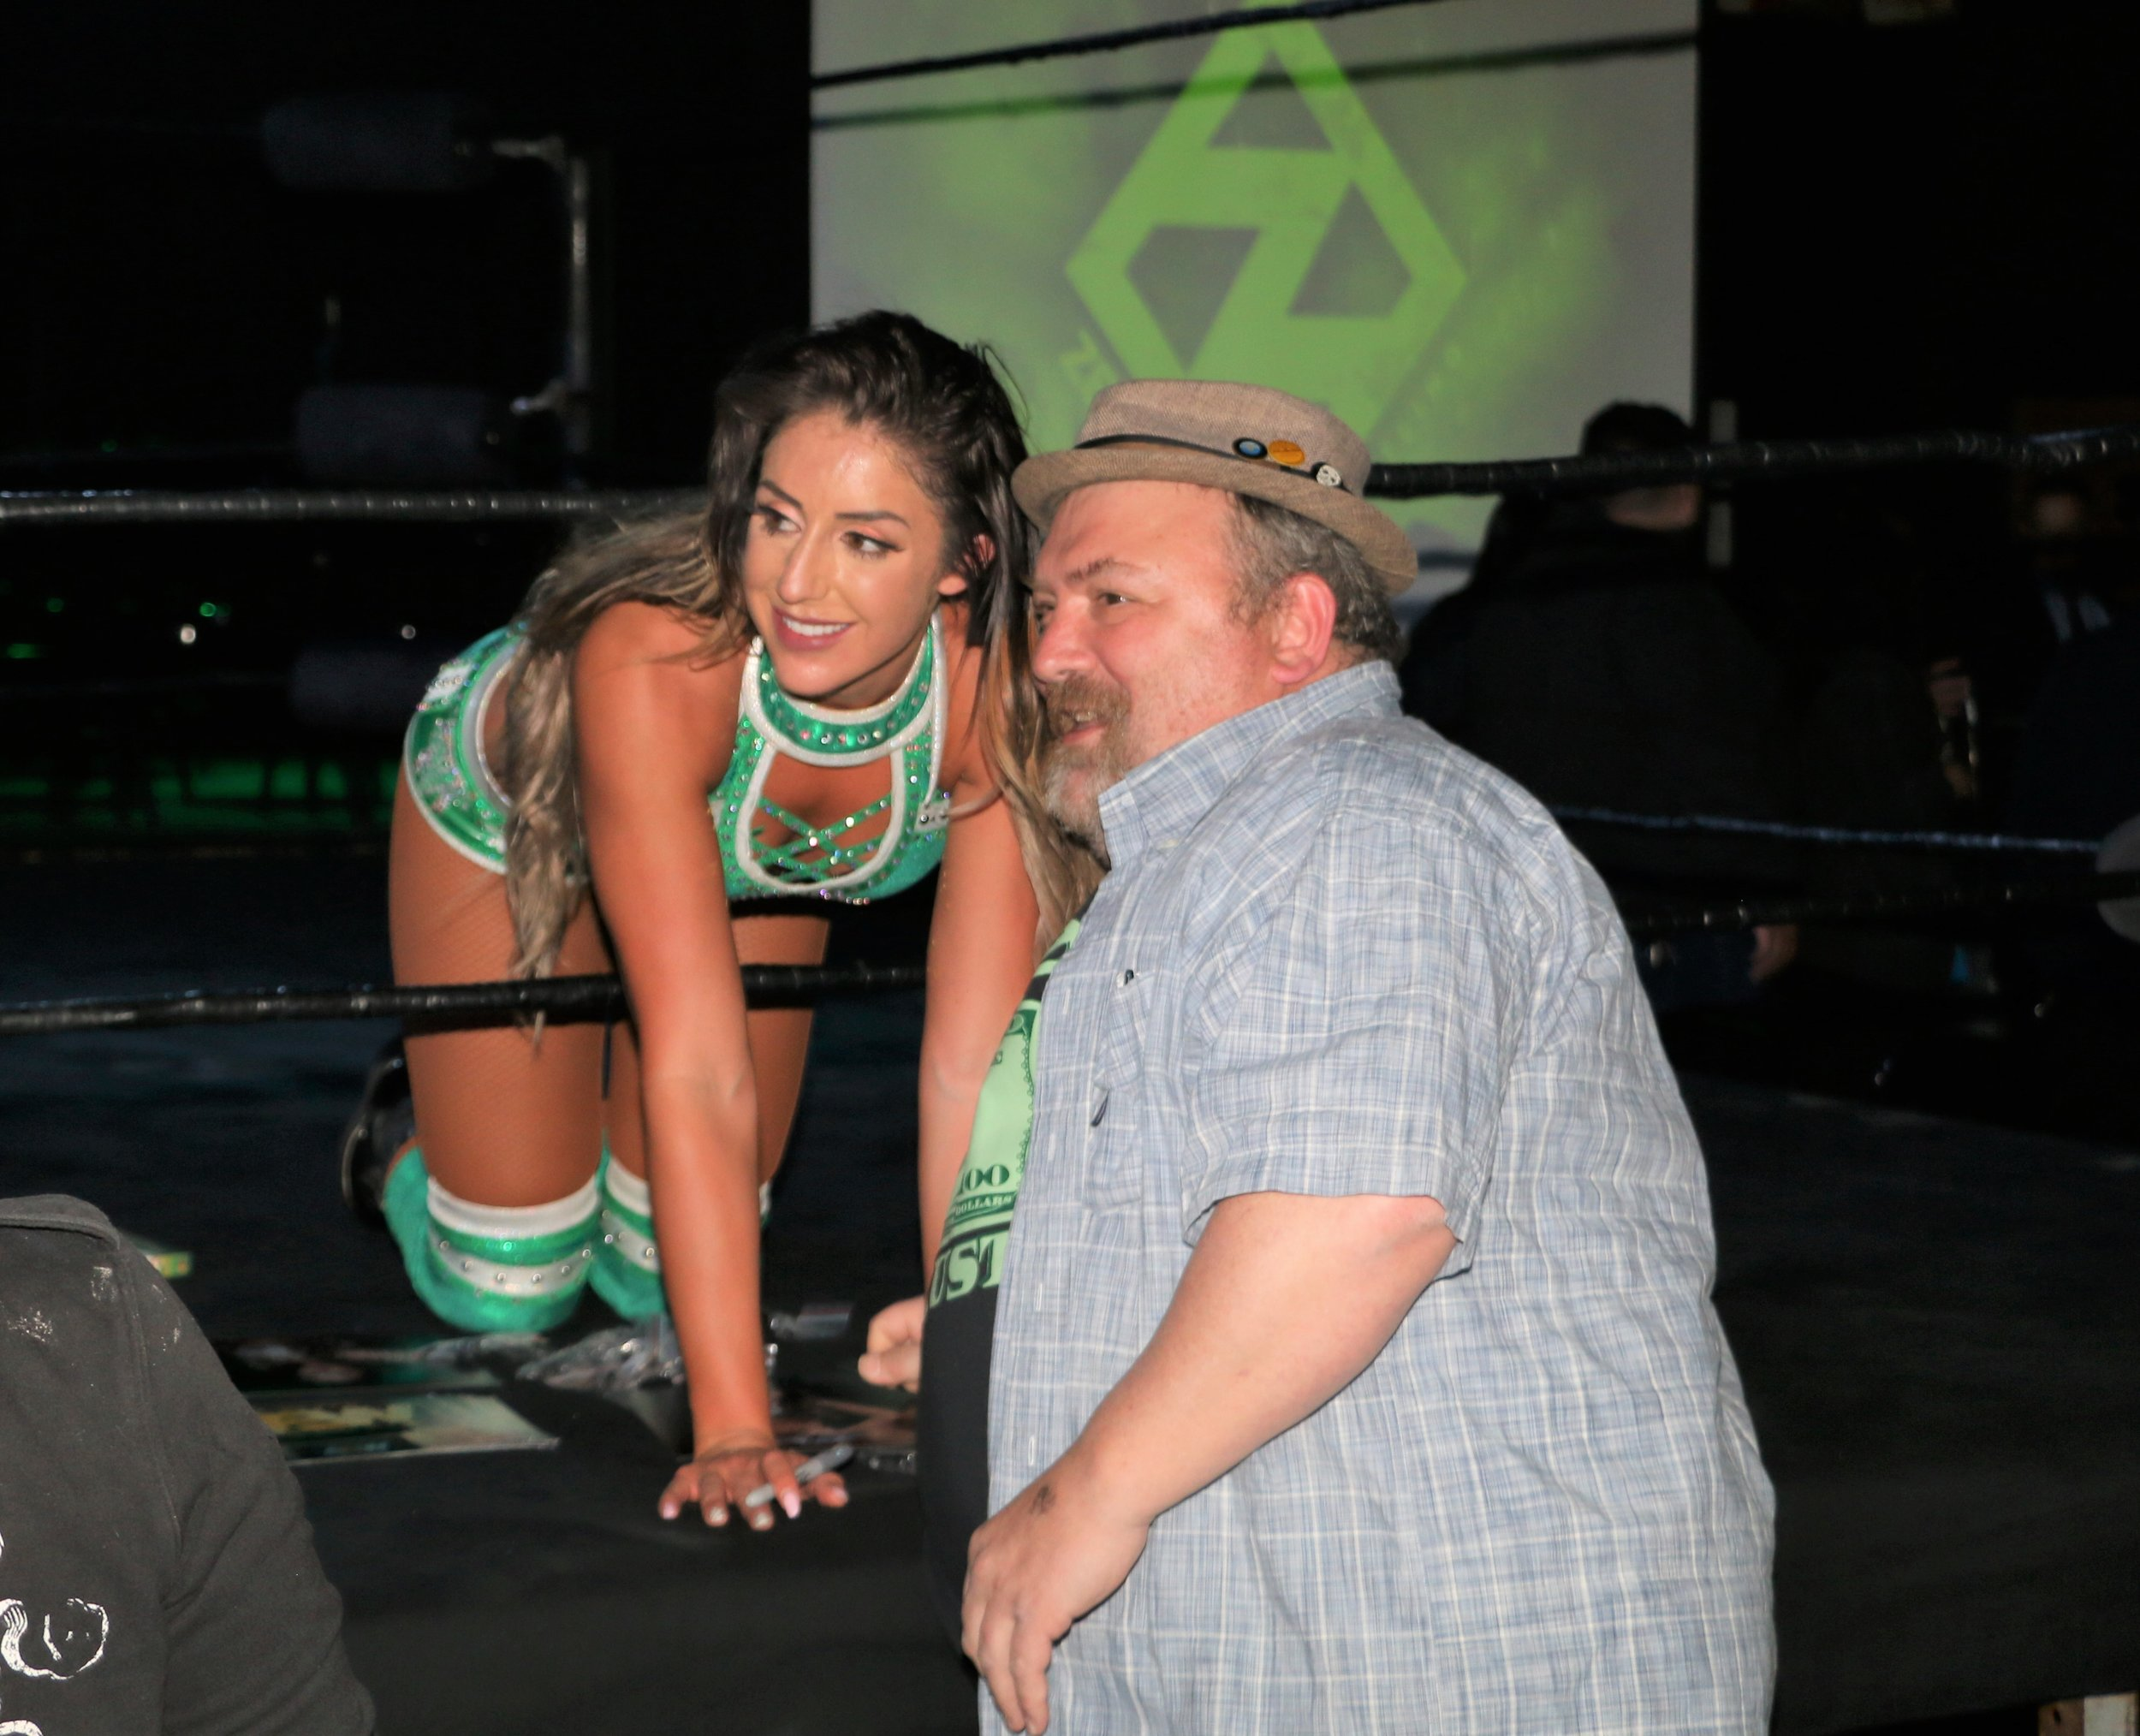 Britt Baker poses with fan during a meet and greet session after the matches.